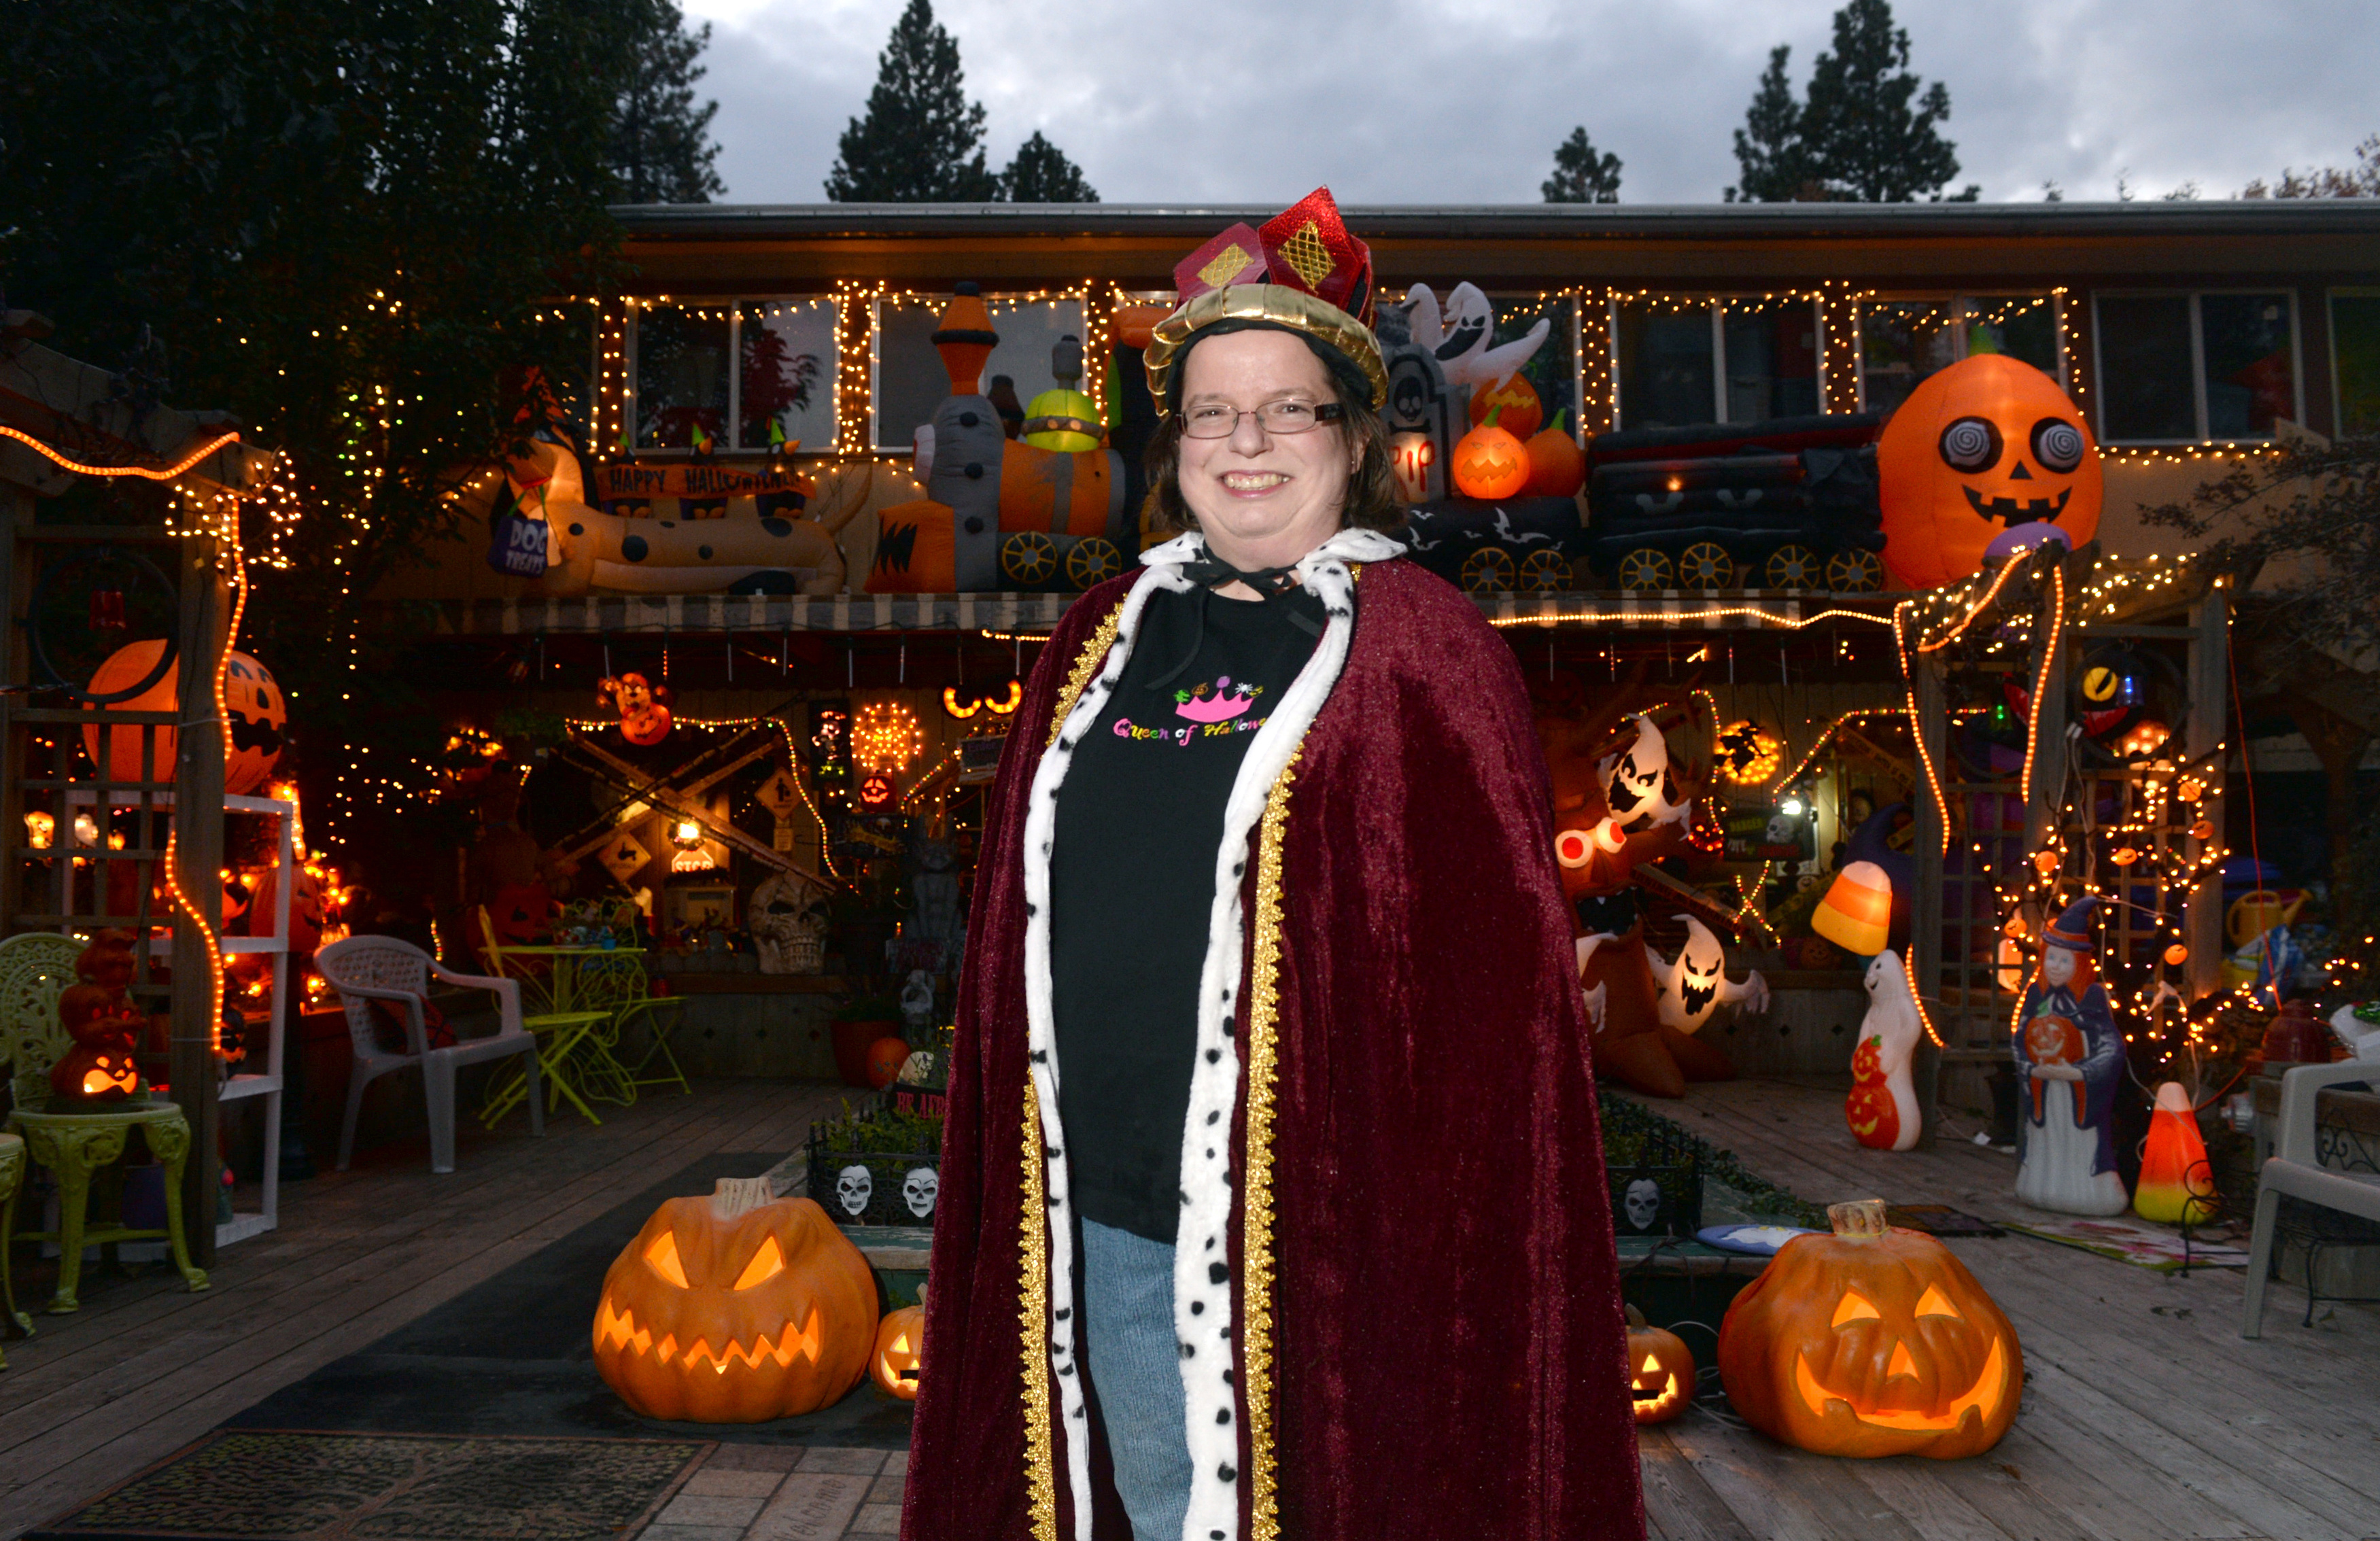 Chris Sheppard Dons Only One Costume On Halloween, A Robe, Crown And  Sweatshirt Reading